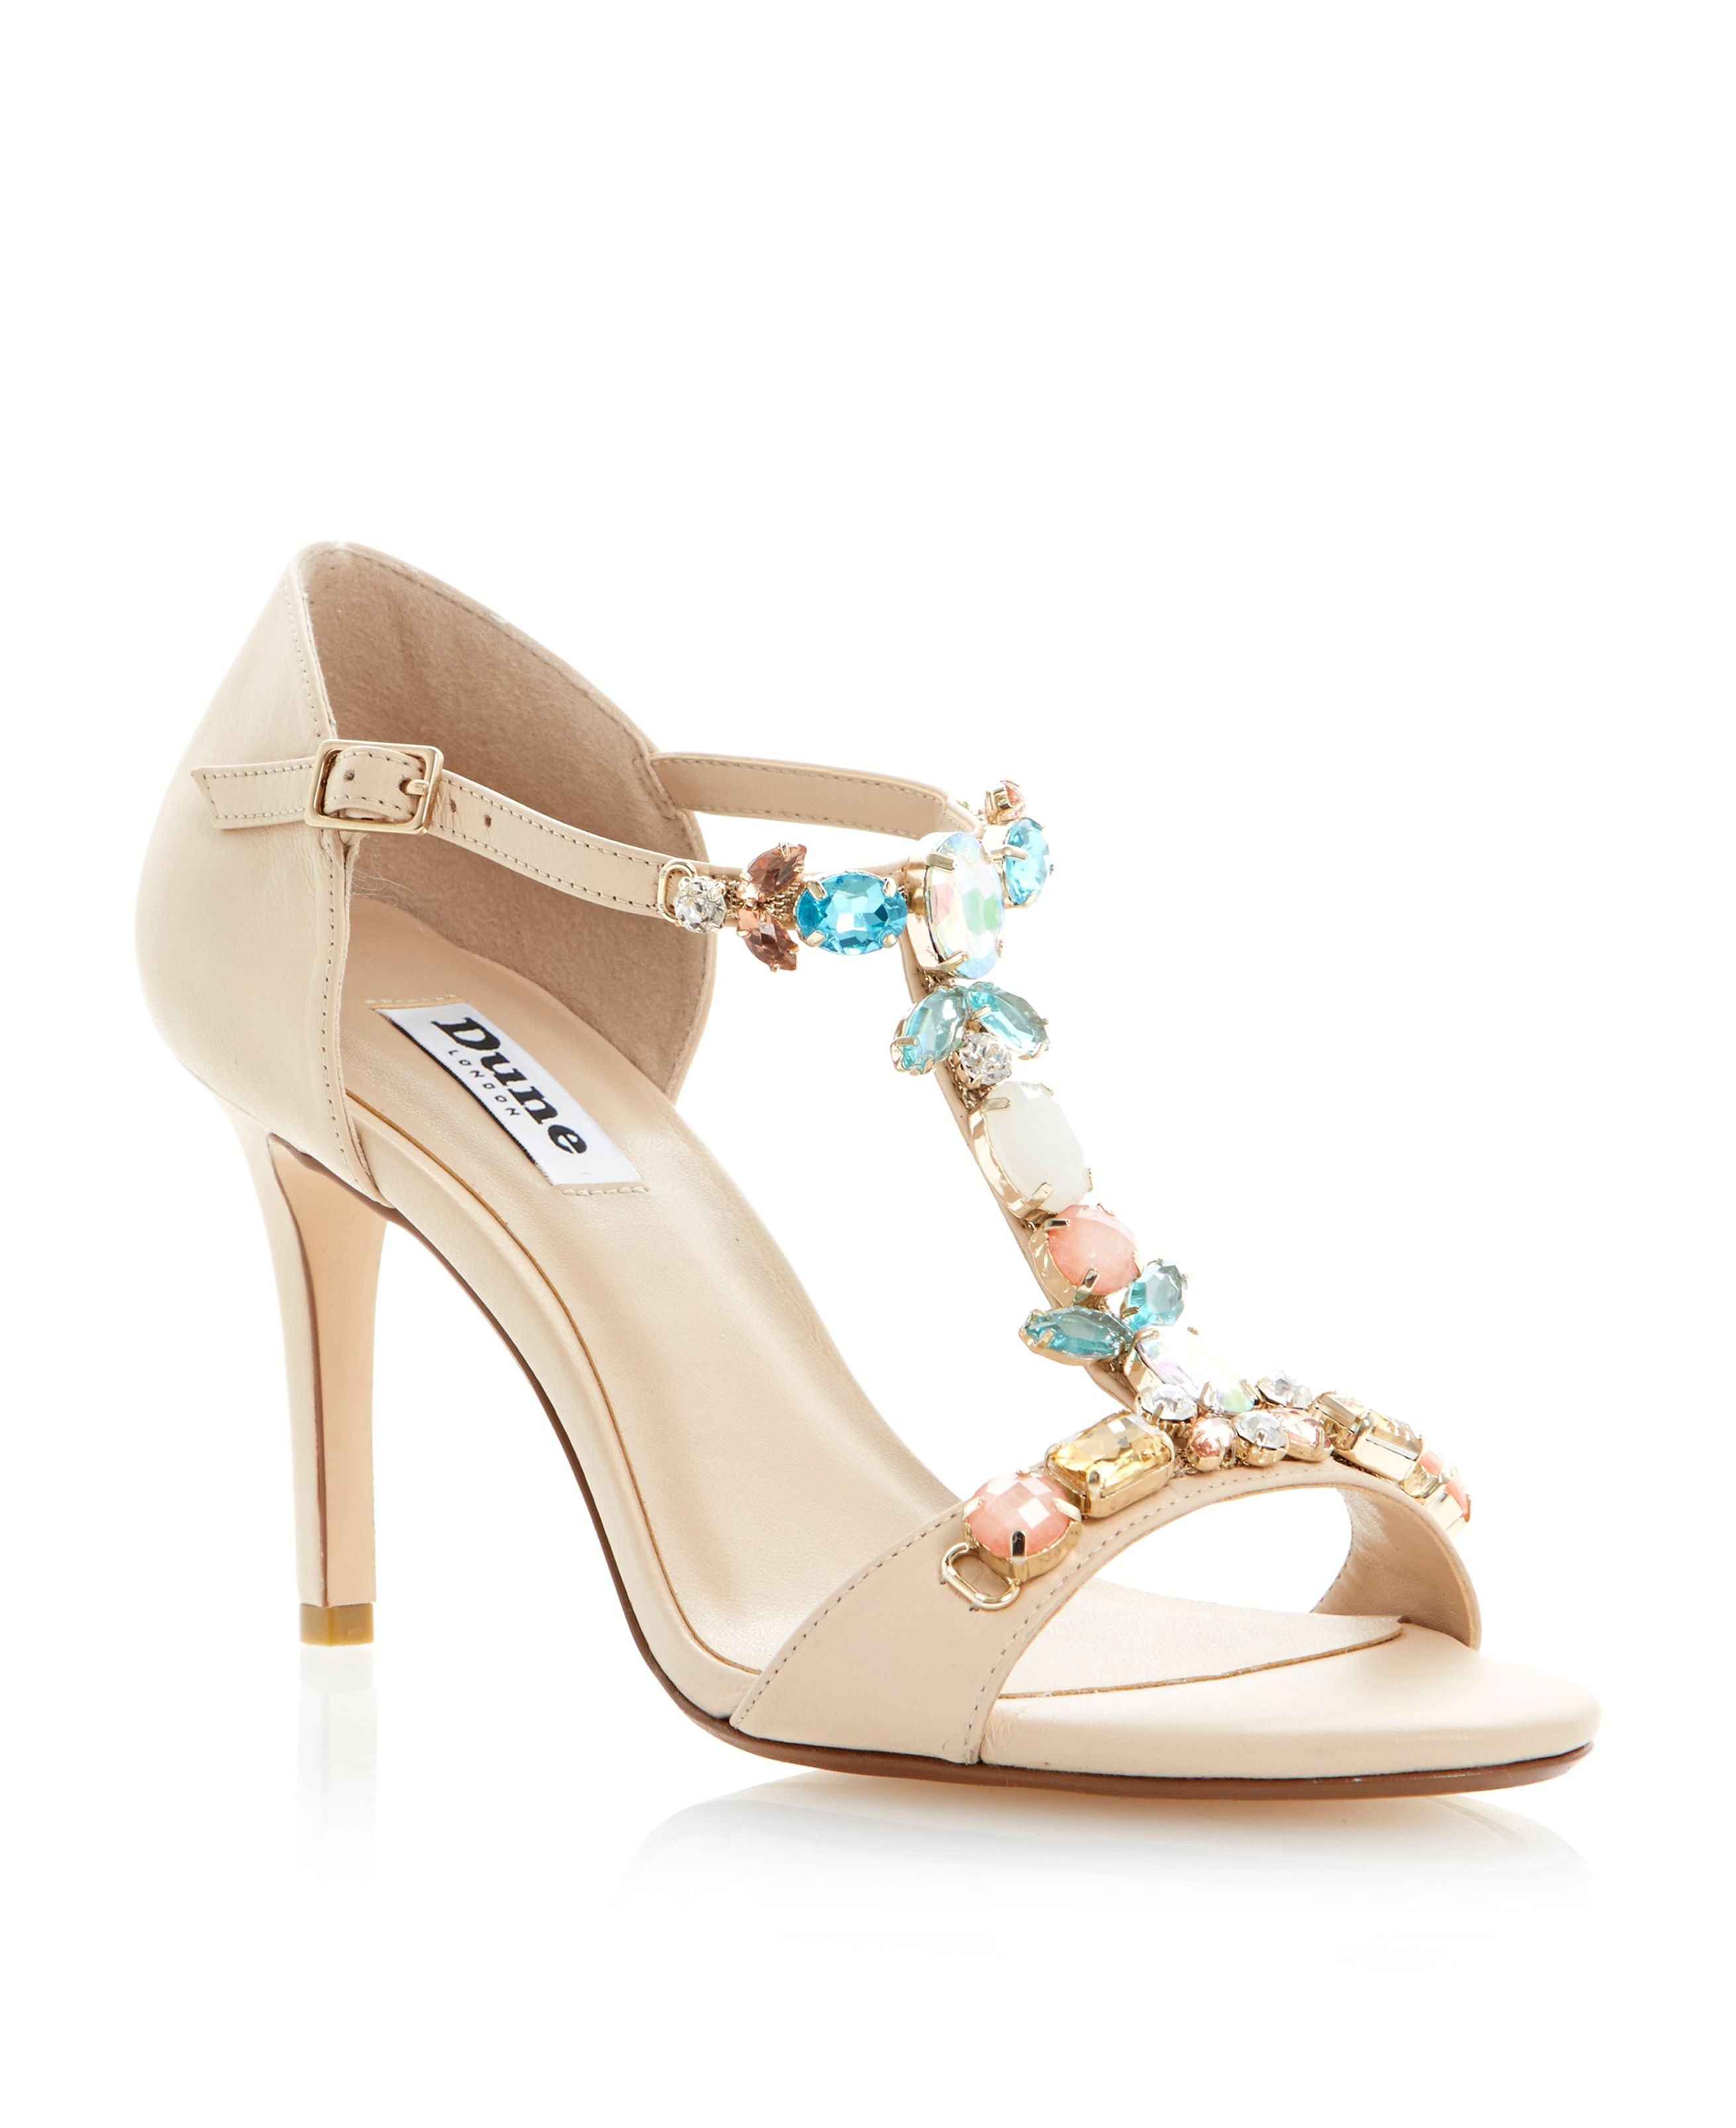 Hummingbird jewelled leather stiletto sandals